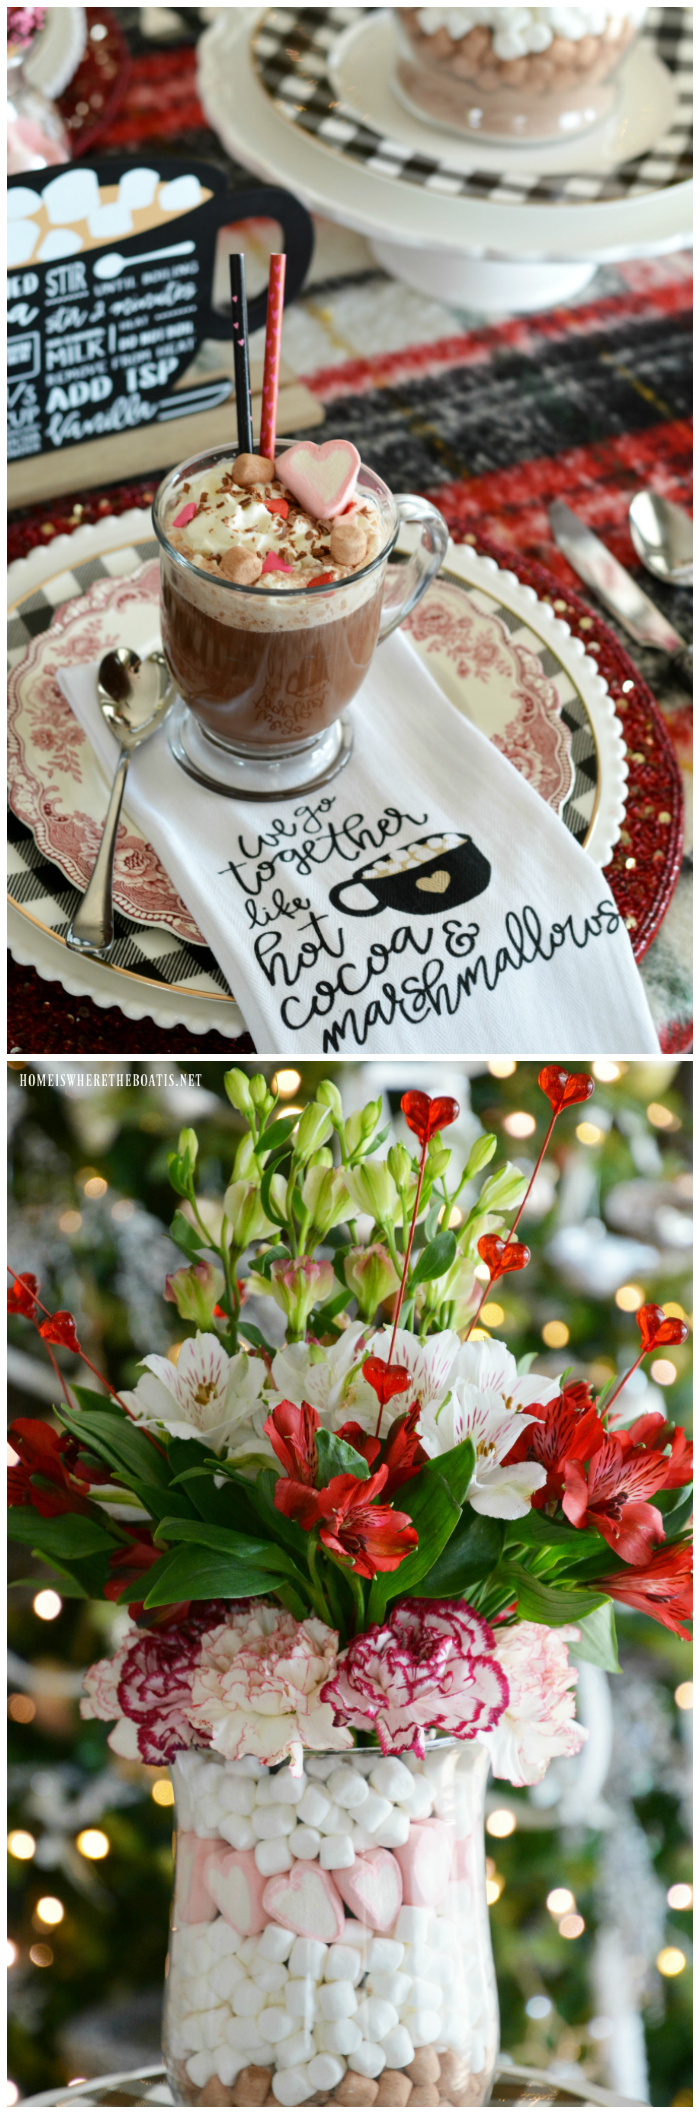 Hot Cocoa & Marshmallows Valentine's Day Tablescape | ©homeiswheretheboatis.net #tablescapes #valentinesday